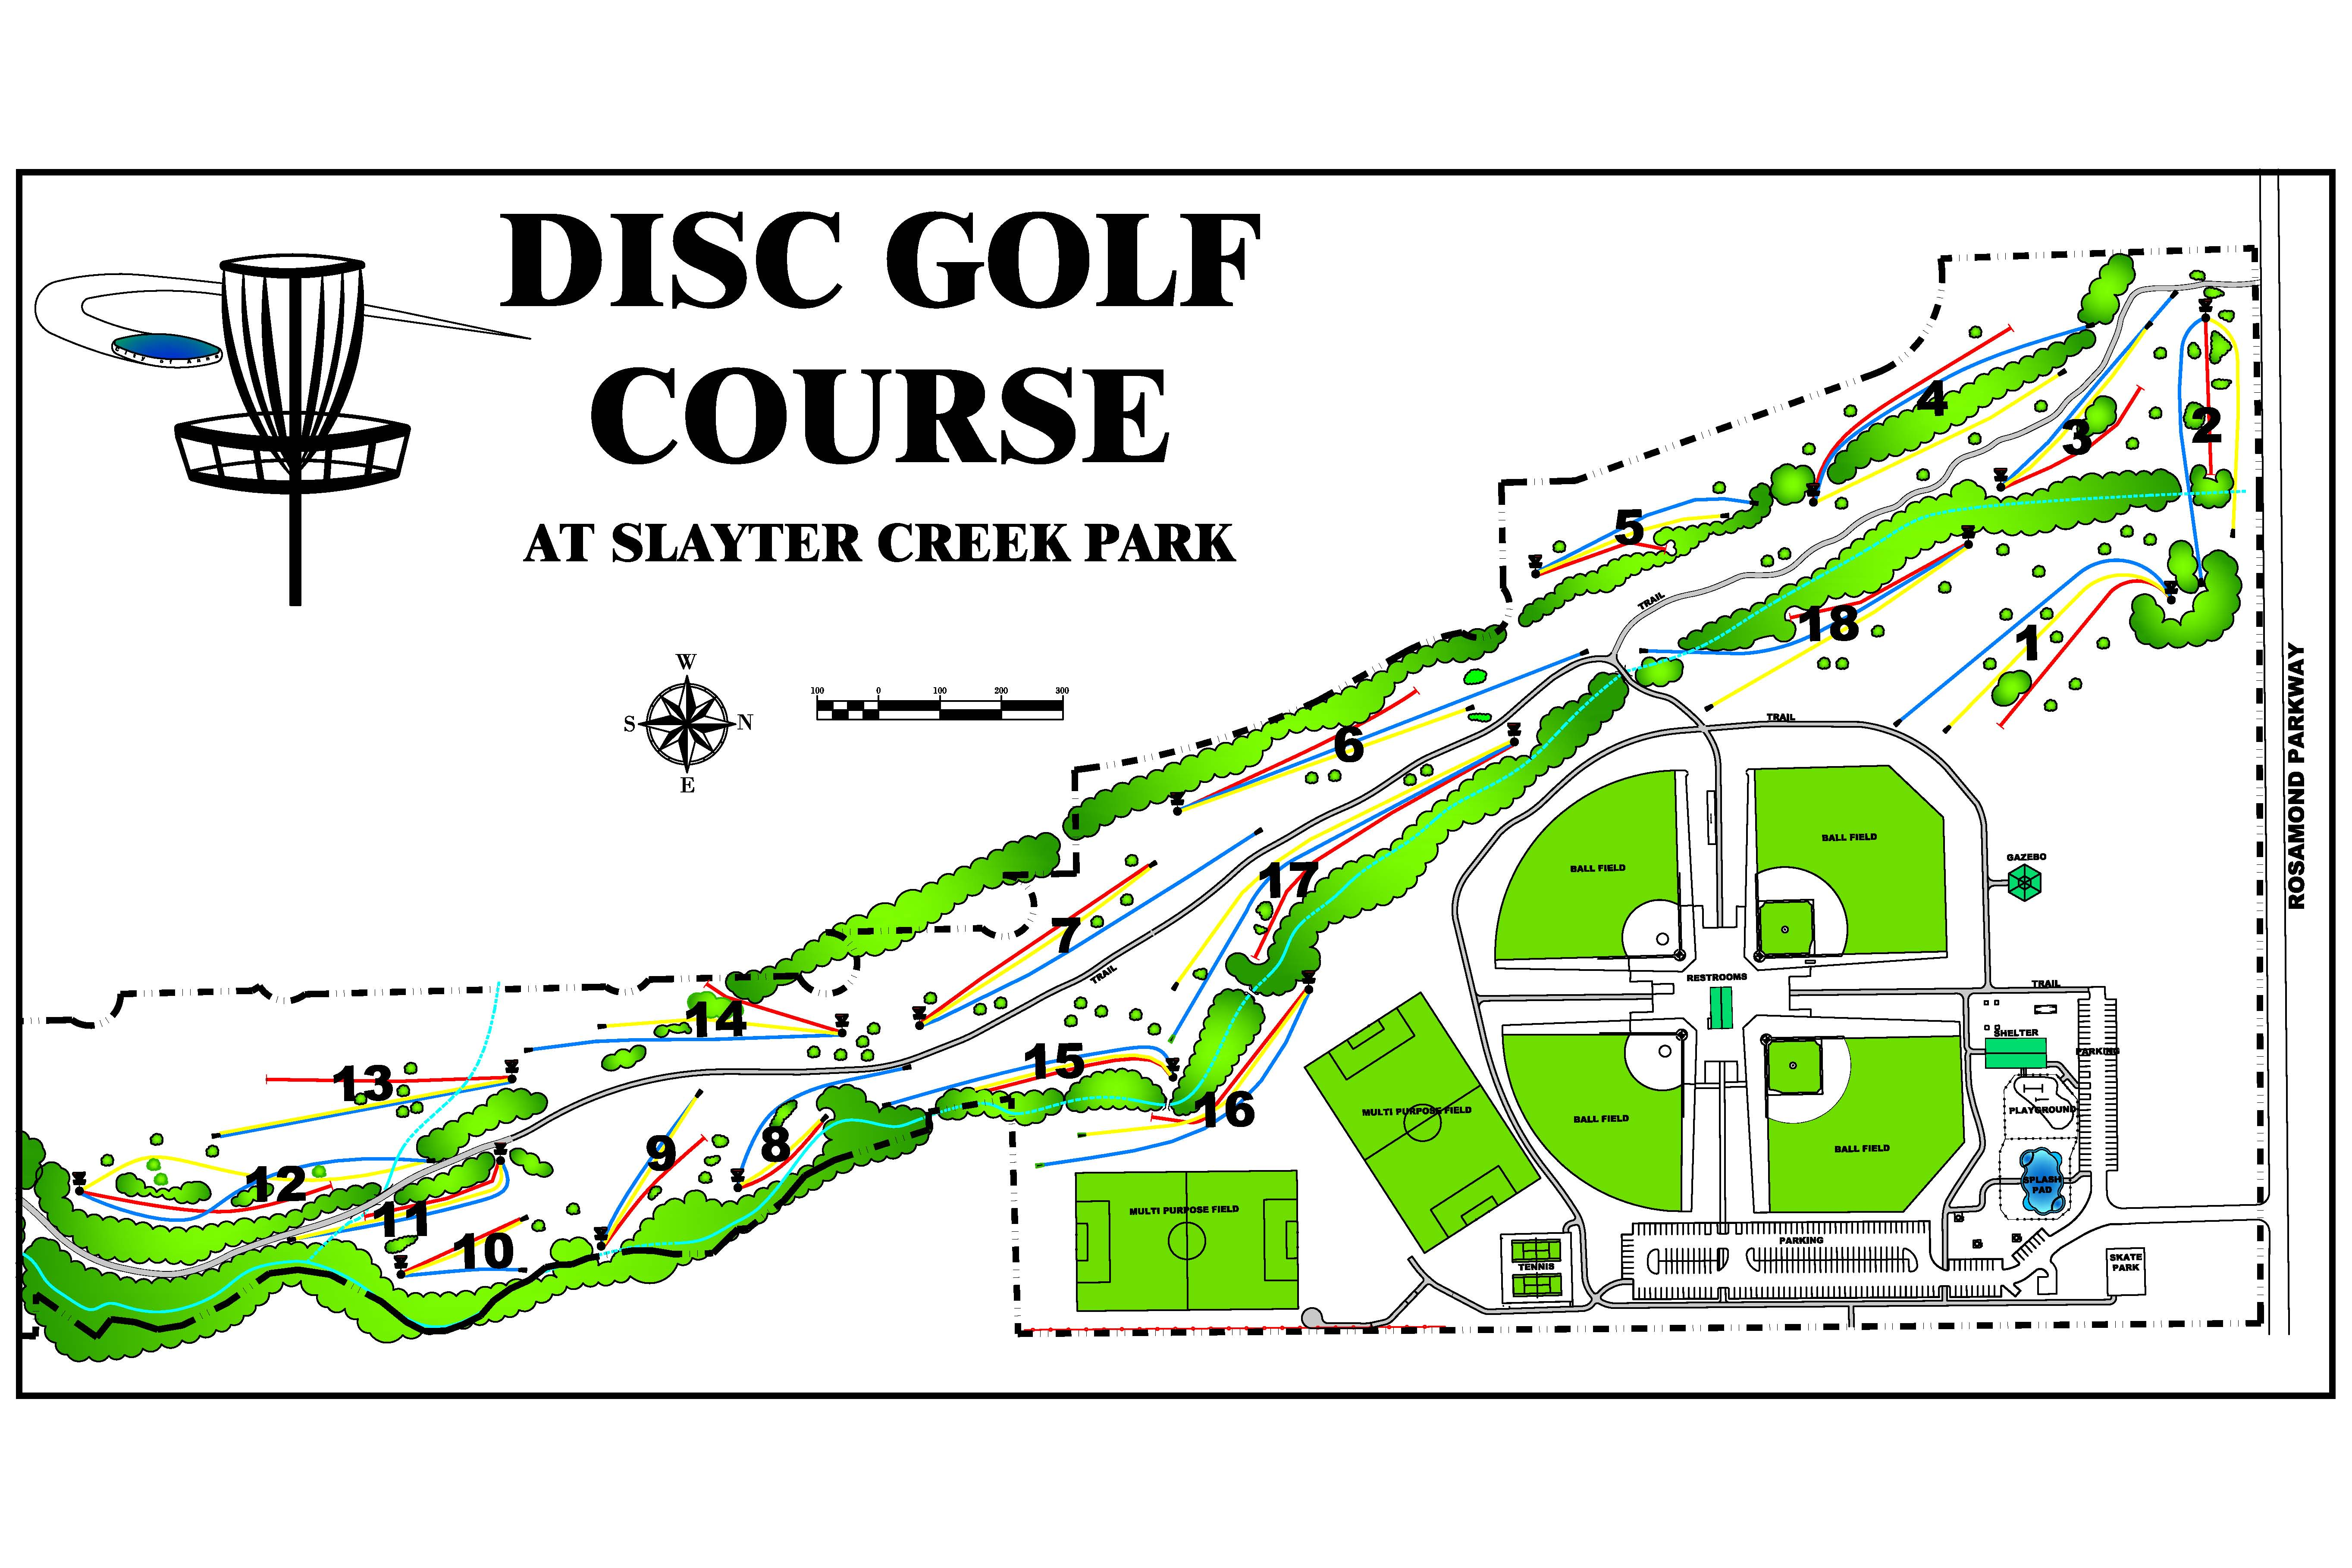 Disk golf course sign Model (4).jpg